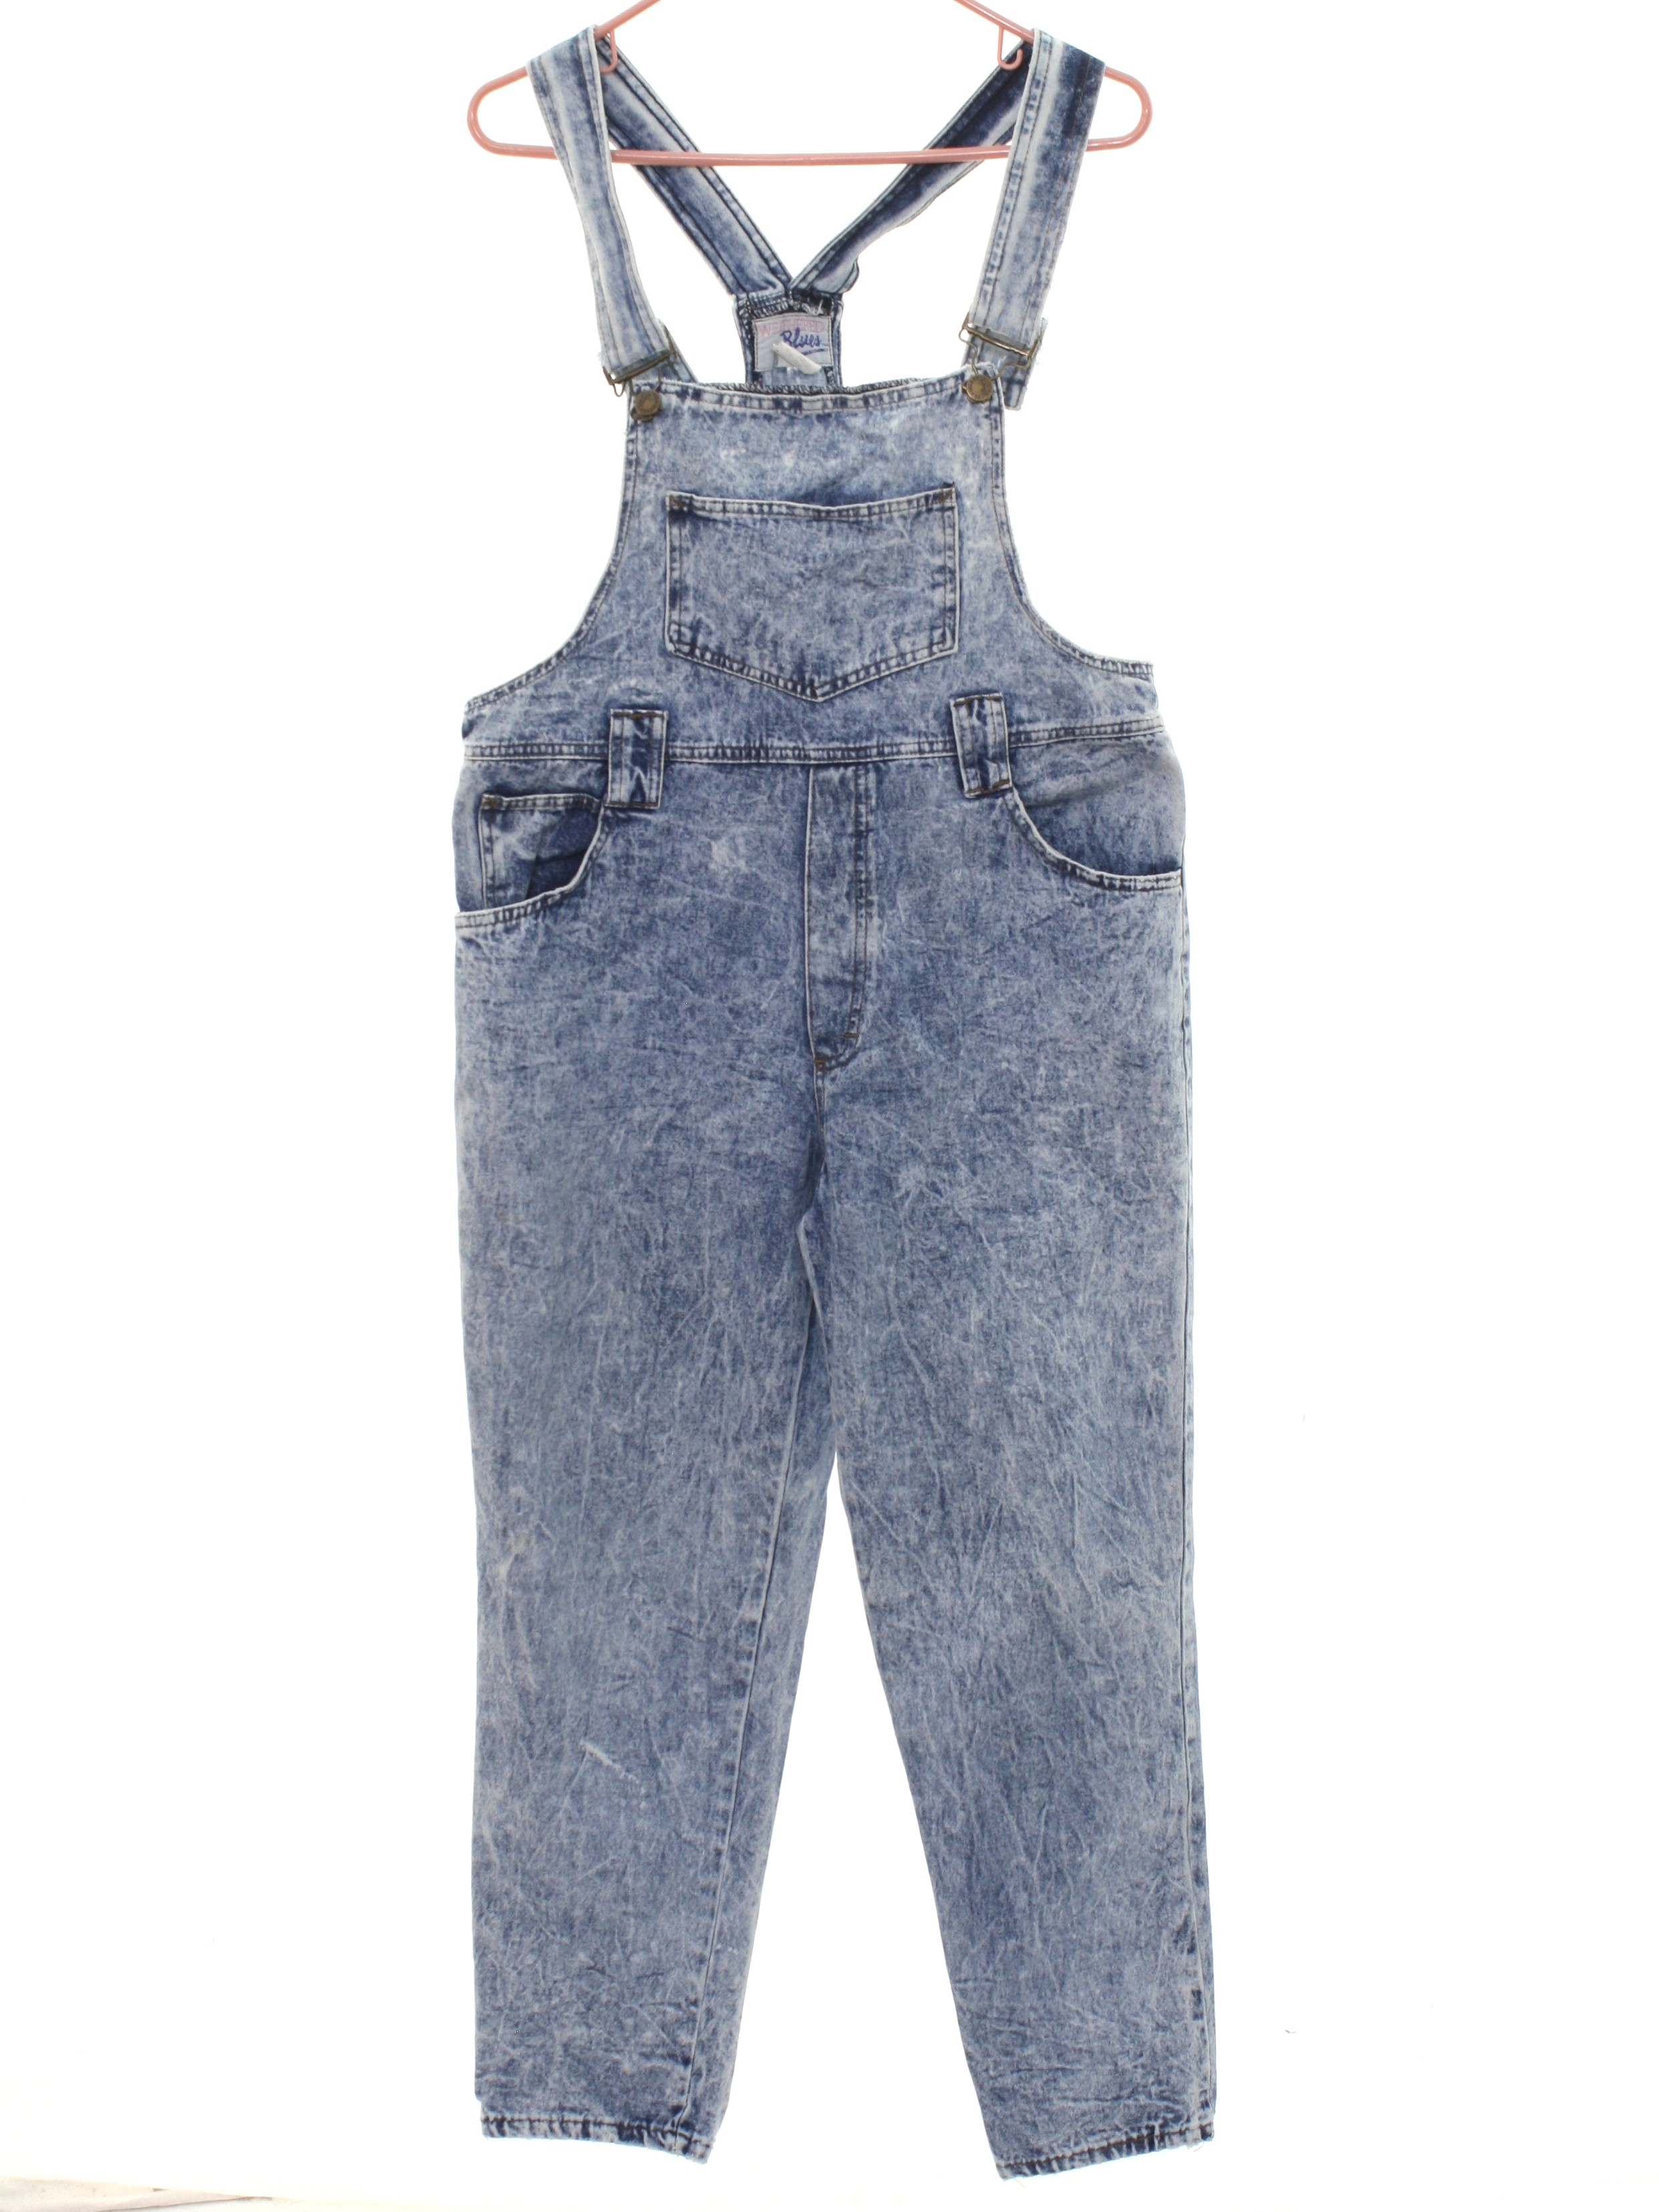 1980's Weathered Blues Womens Totally 80s Acid Washed Denim Overalls